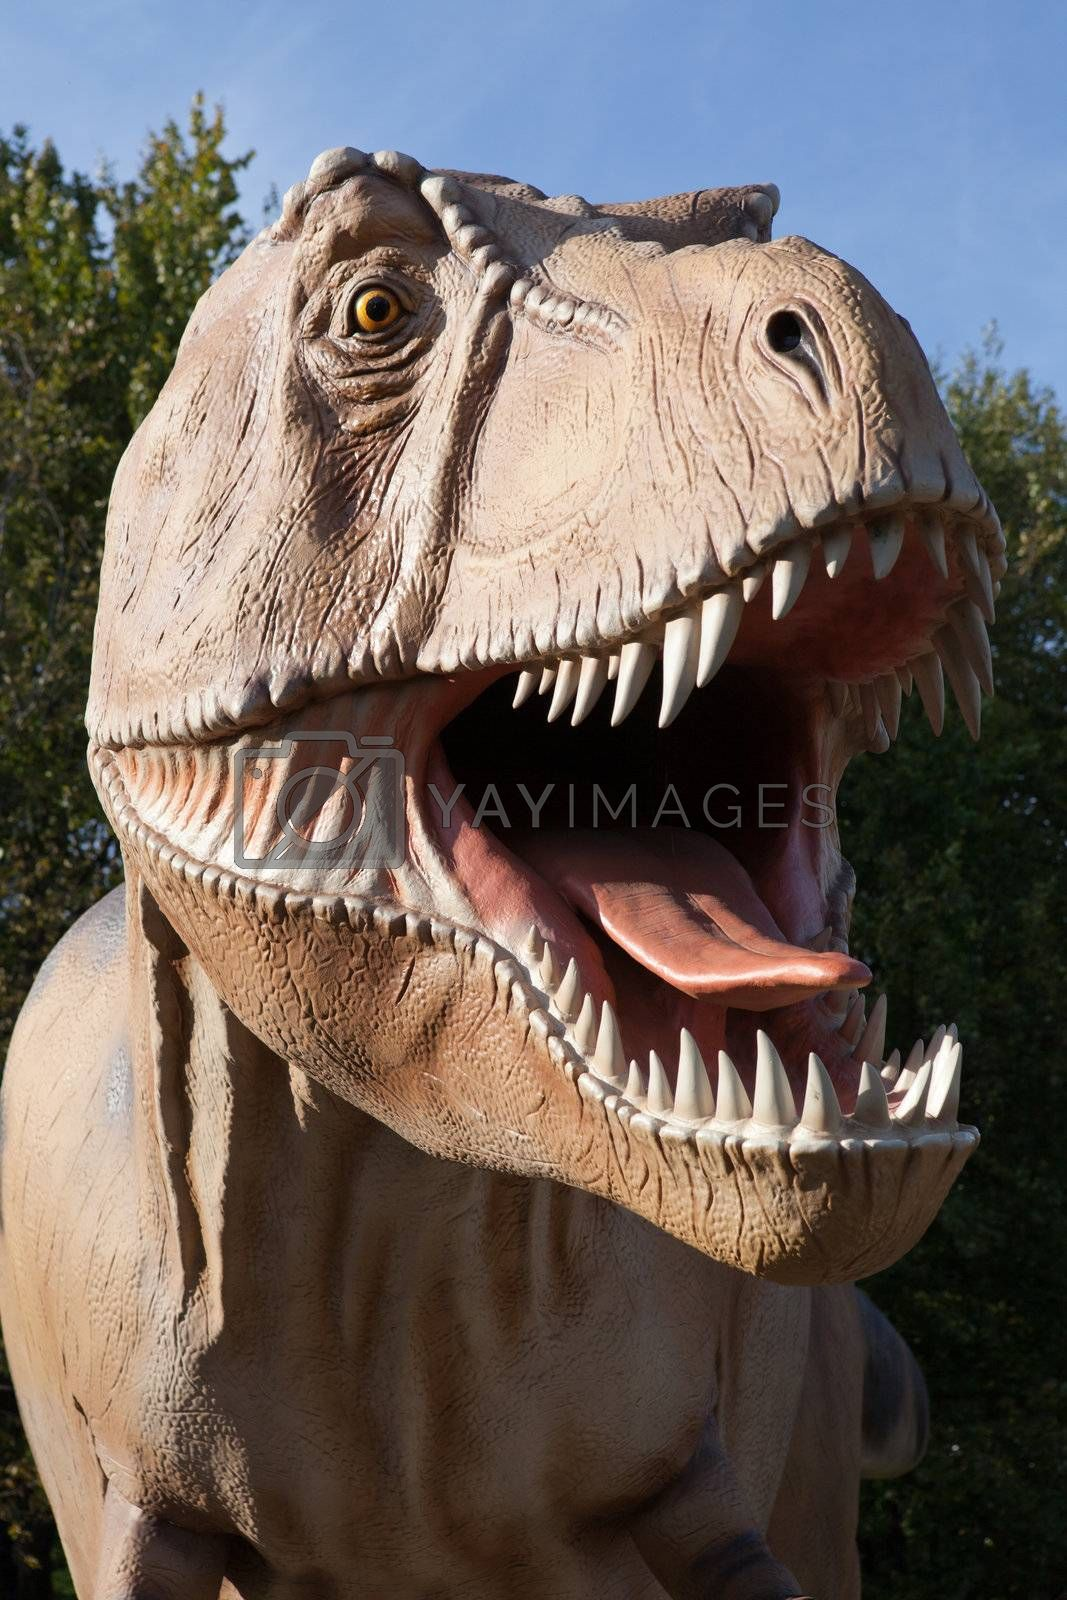 Prehistoric carnivore reptile dinosaur tyrannosaurus rex with open jaw from cretaceous period on green tree and sky background